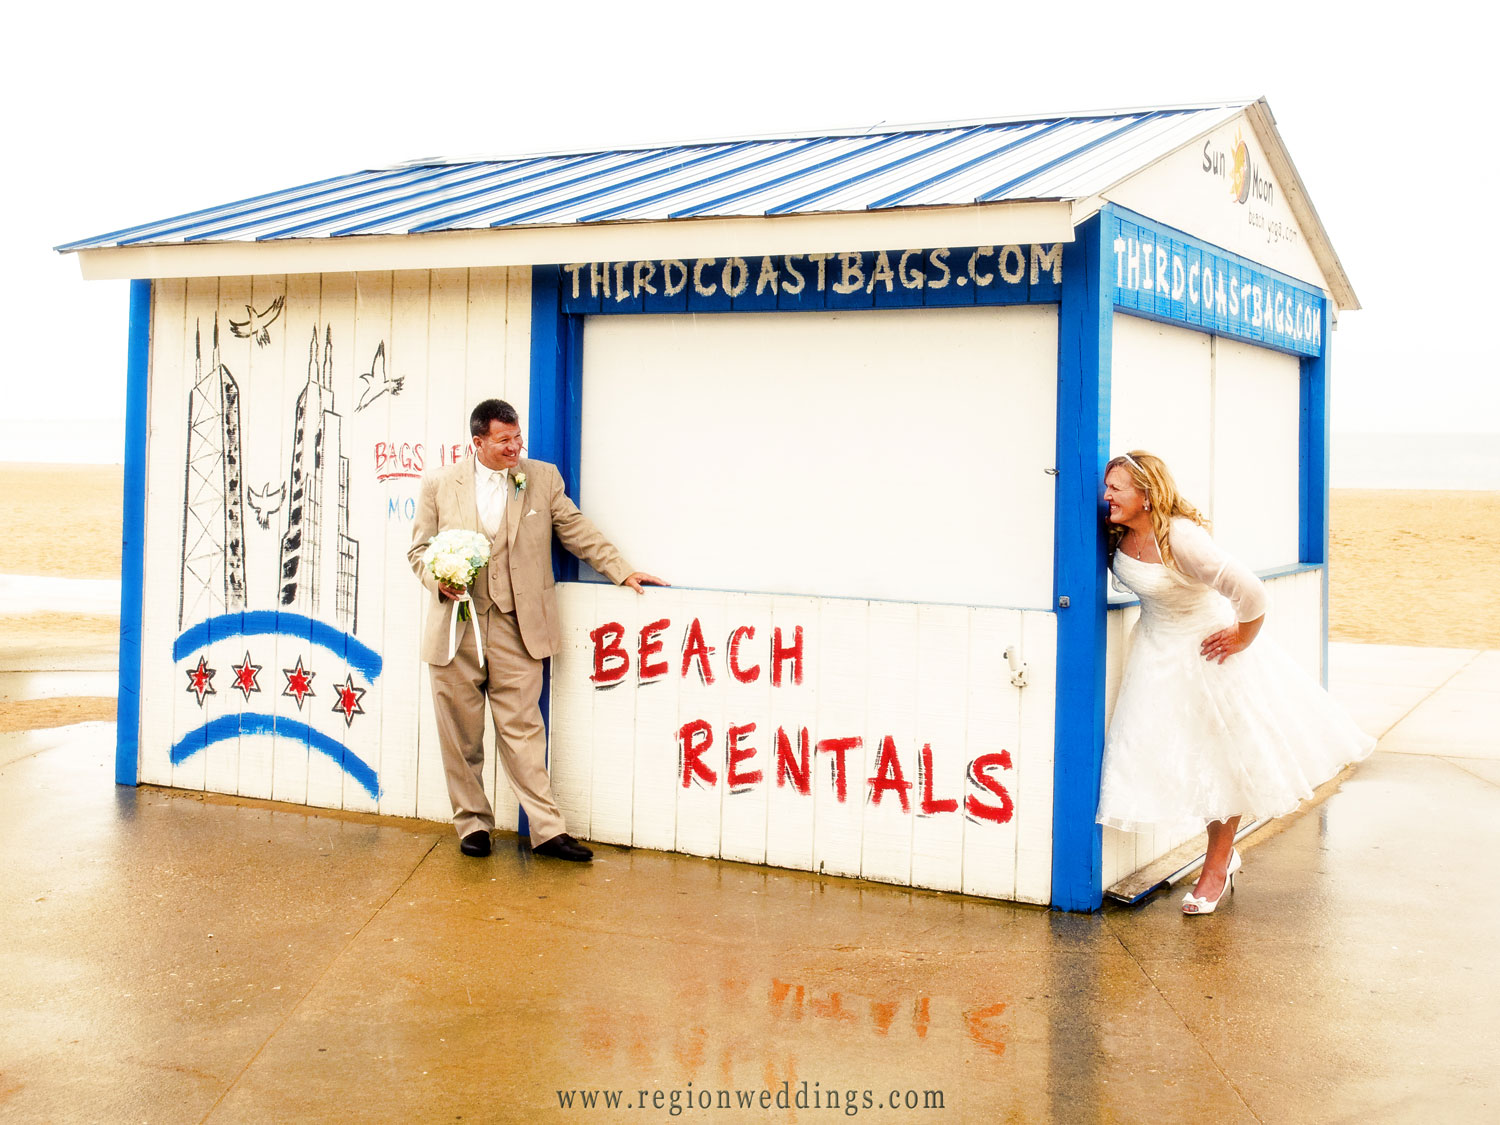 The bride and groom playing peekaboo along North Street beach in Chicago.